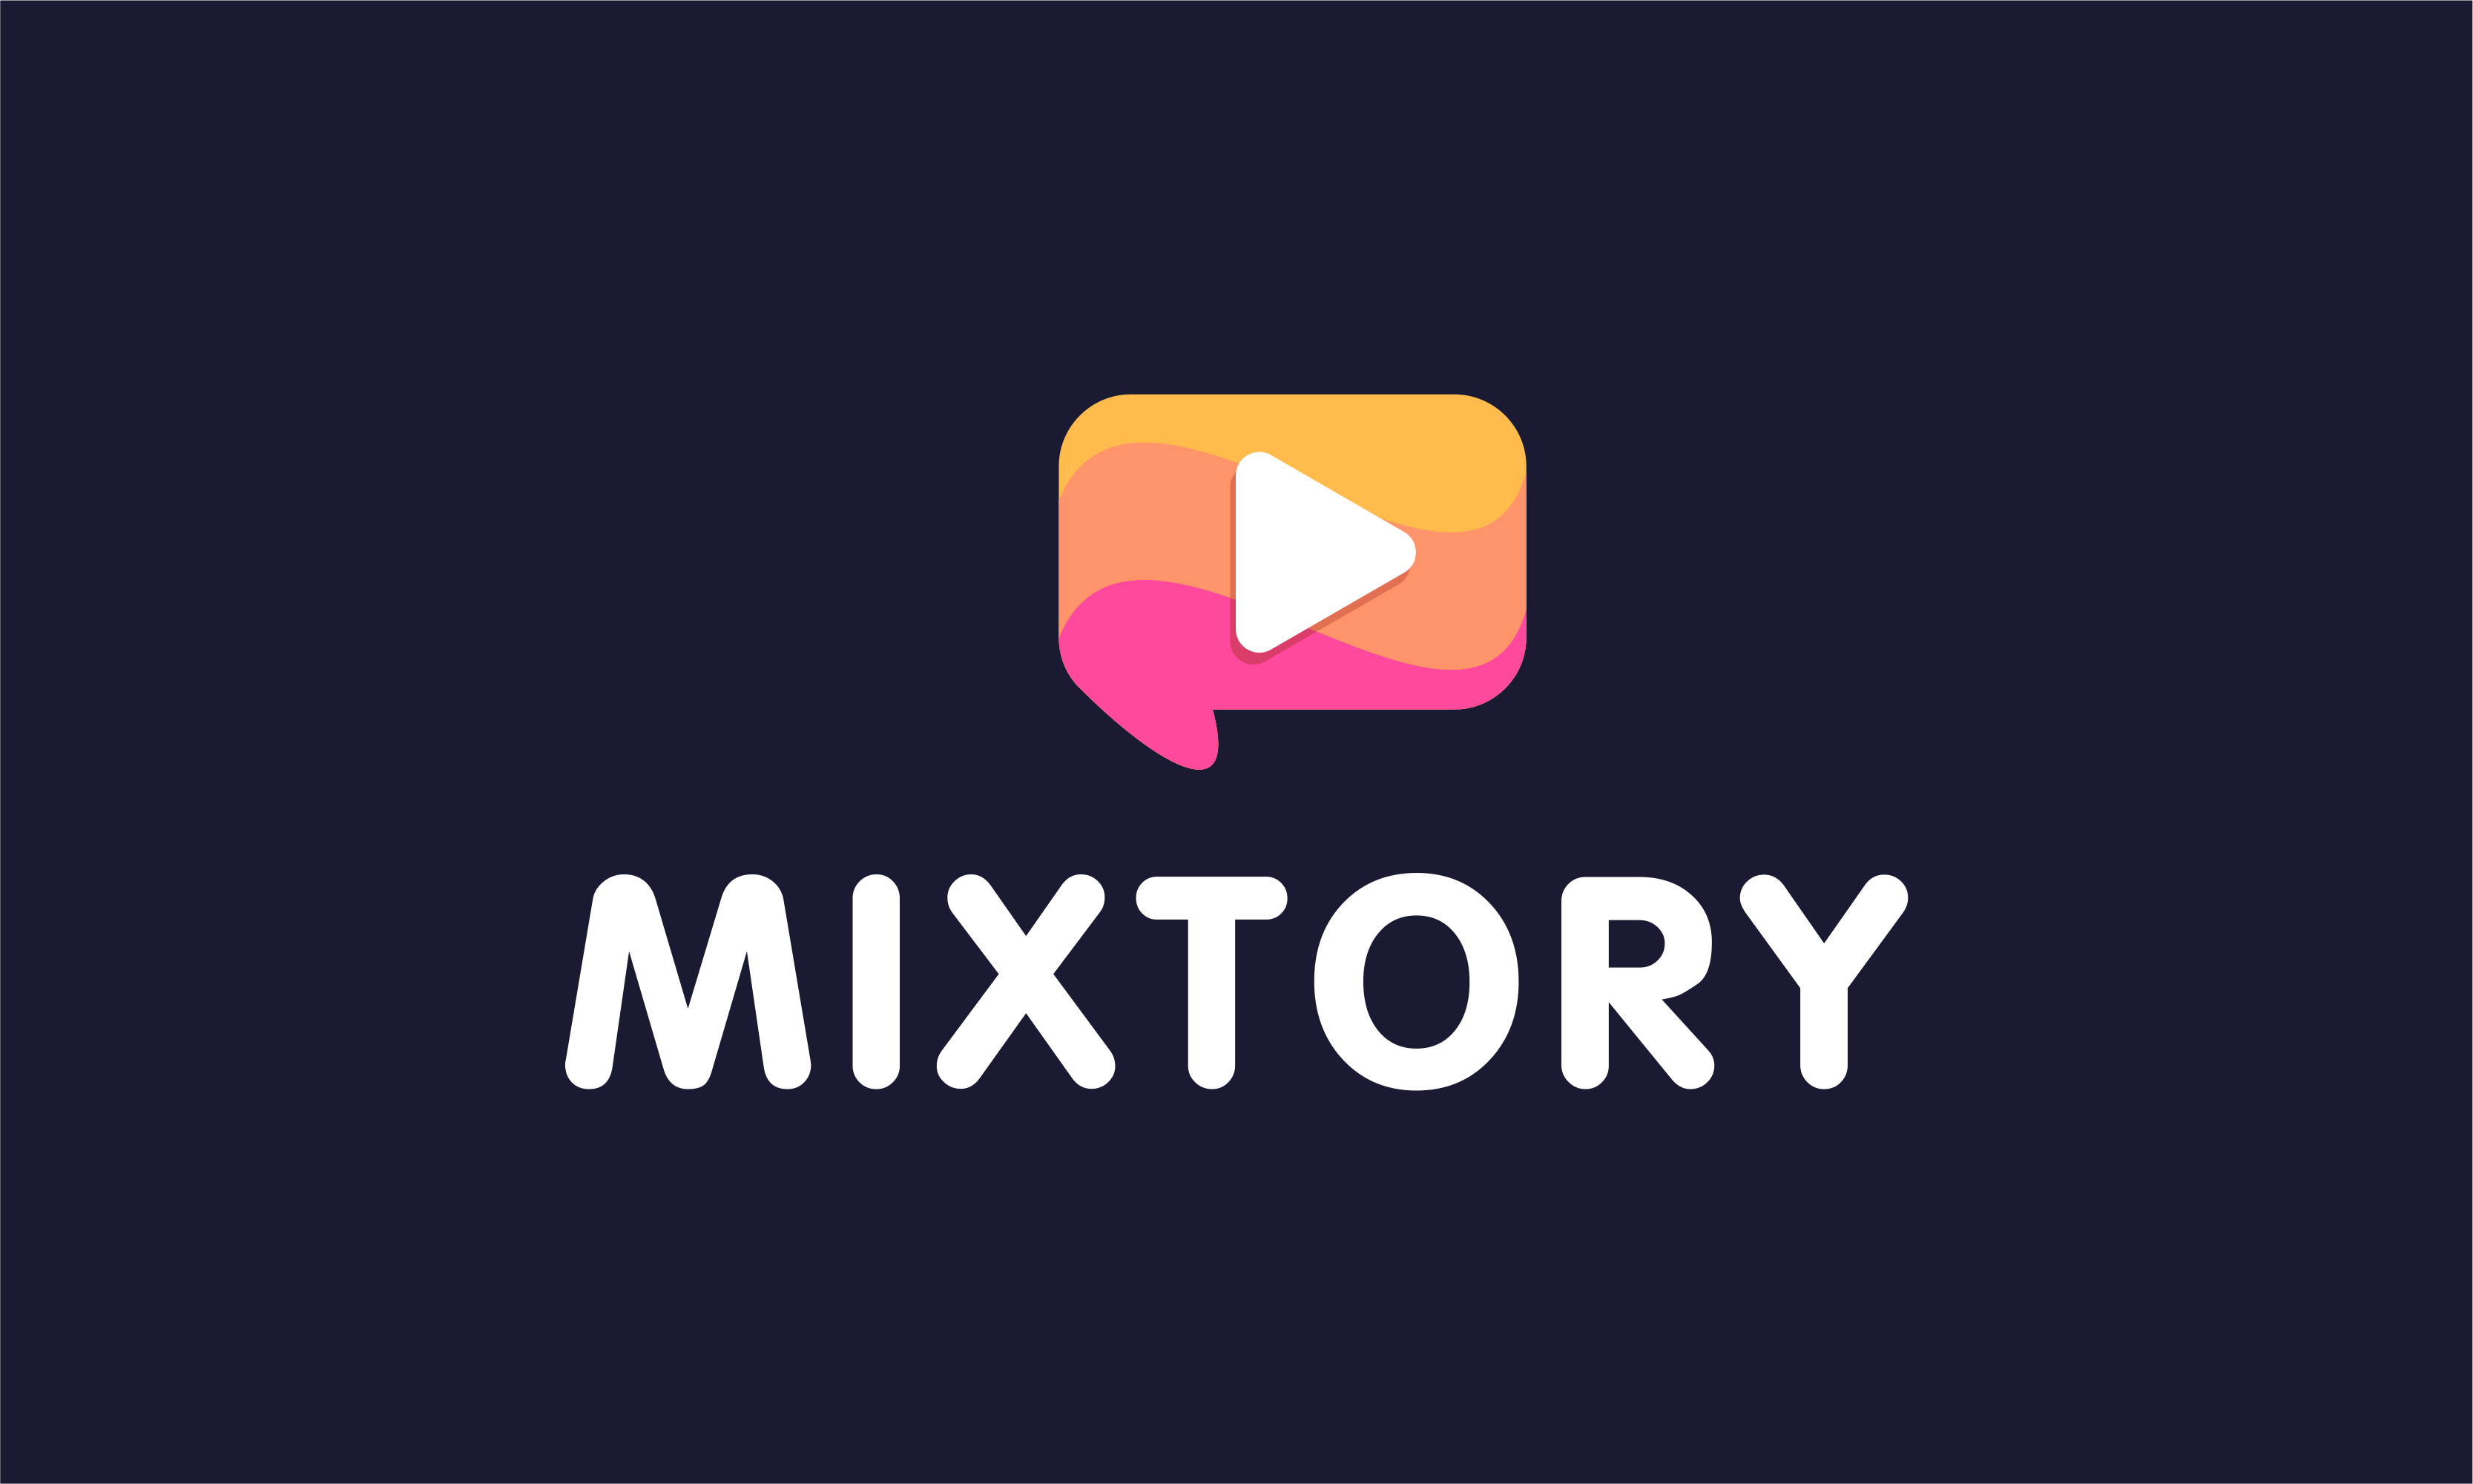 Mixtory - Creative product name for sale